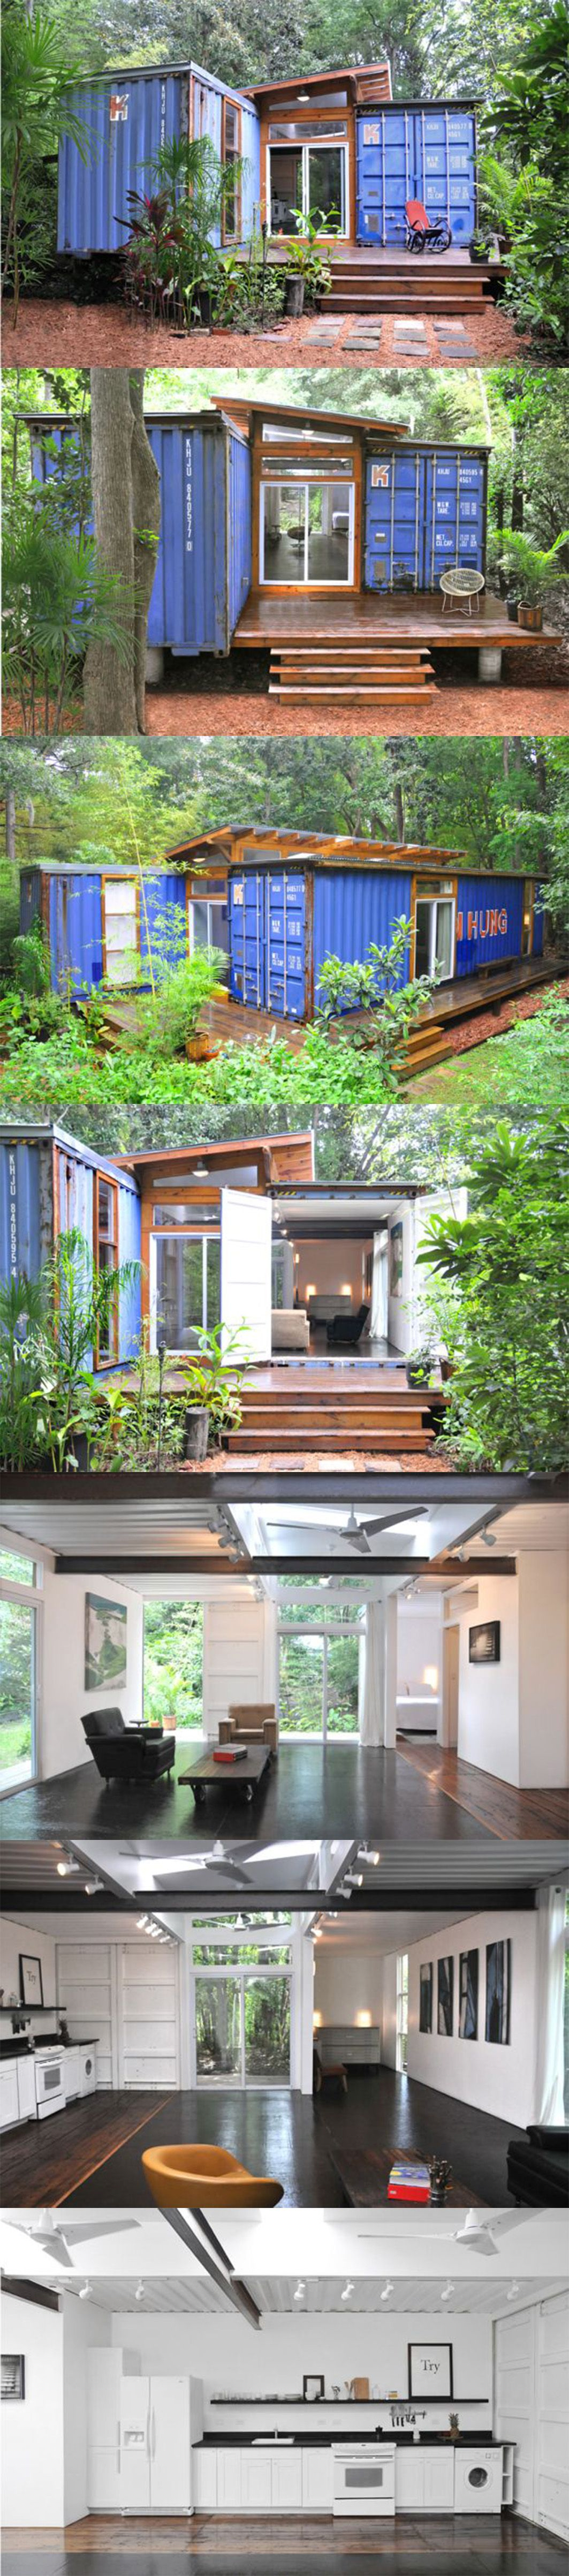 DIY Shipping Container Home with plans they